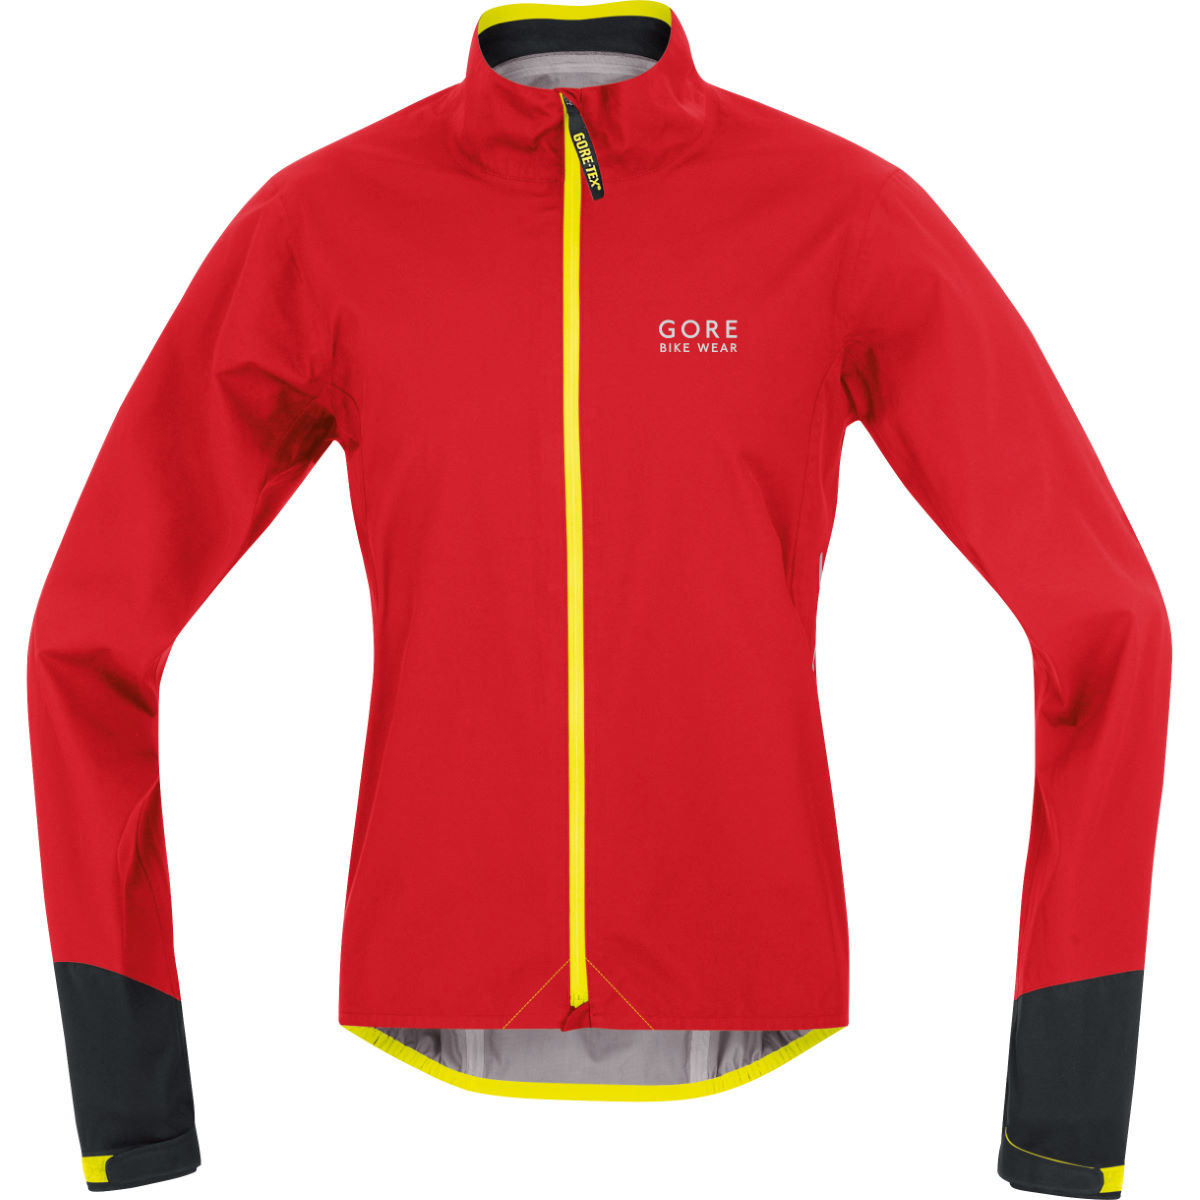 Veste Gore Bike Wear Power Gore-Tex Active - S Rouge/Noir Vestes imperméables vélo